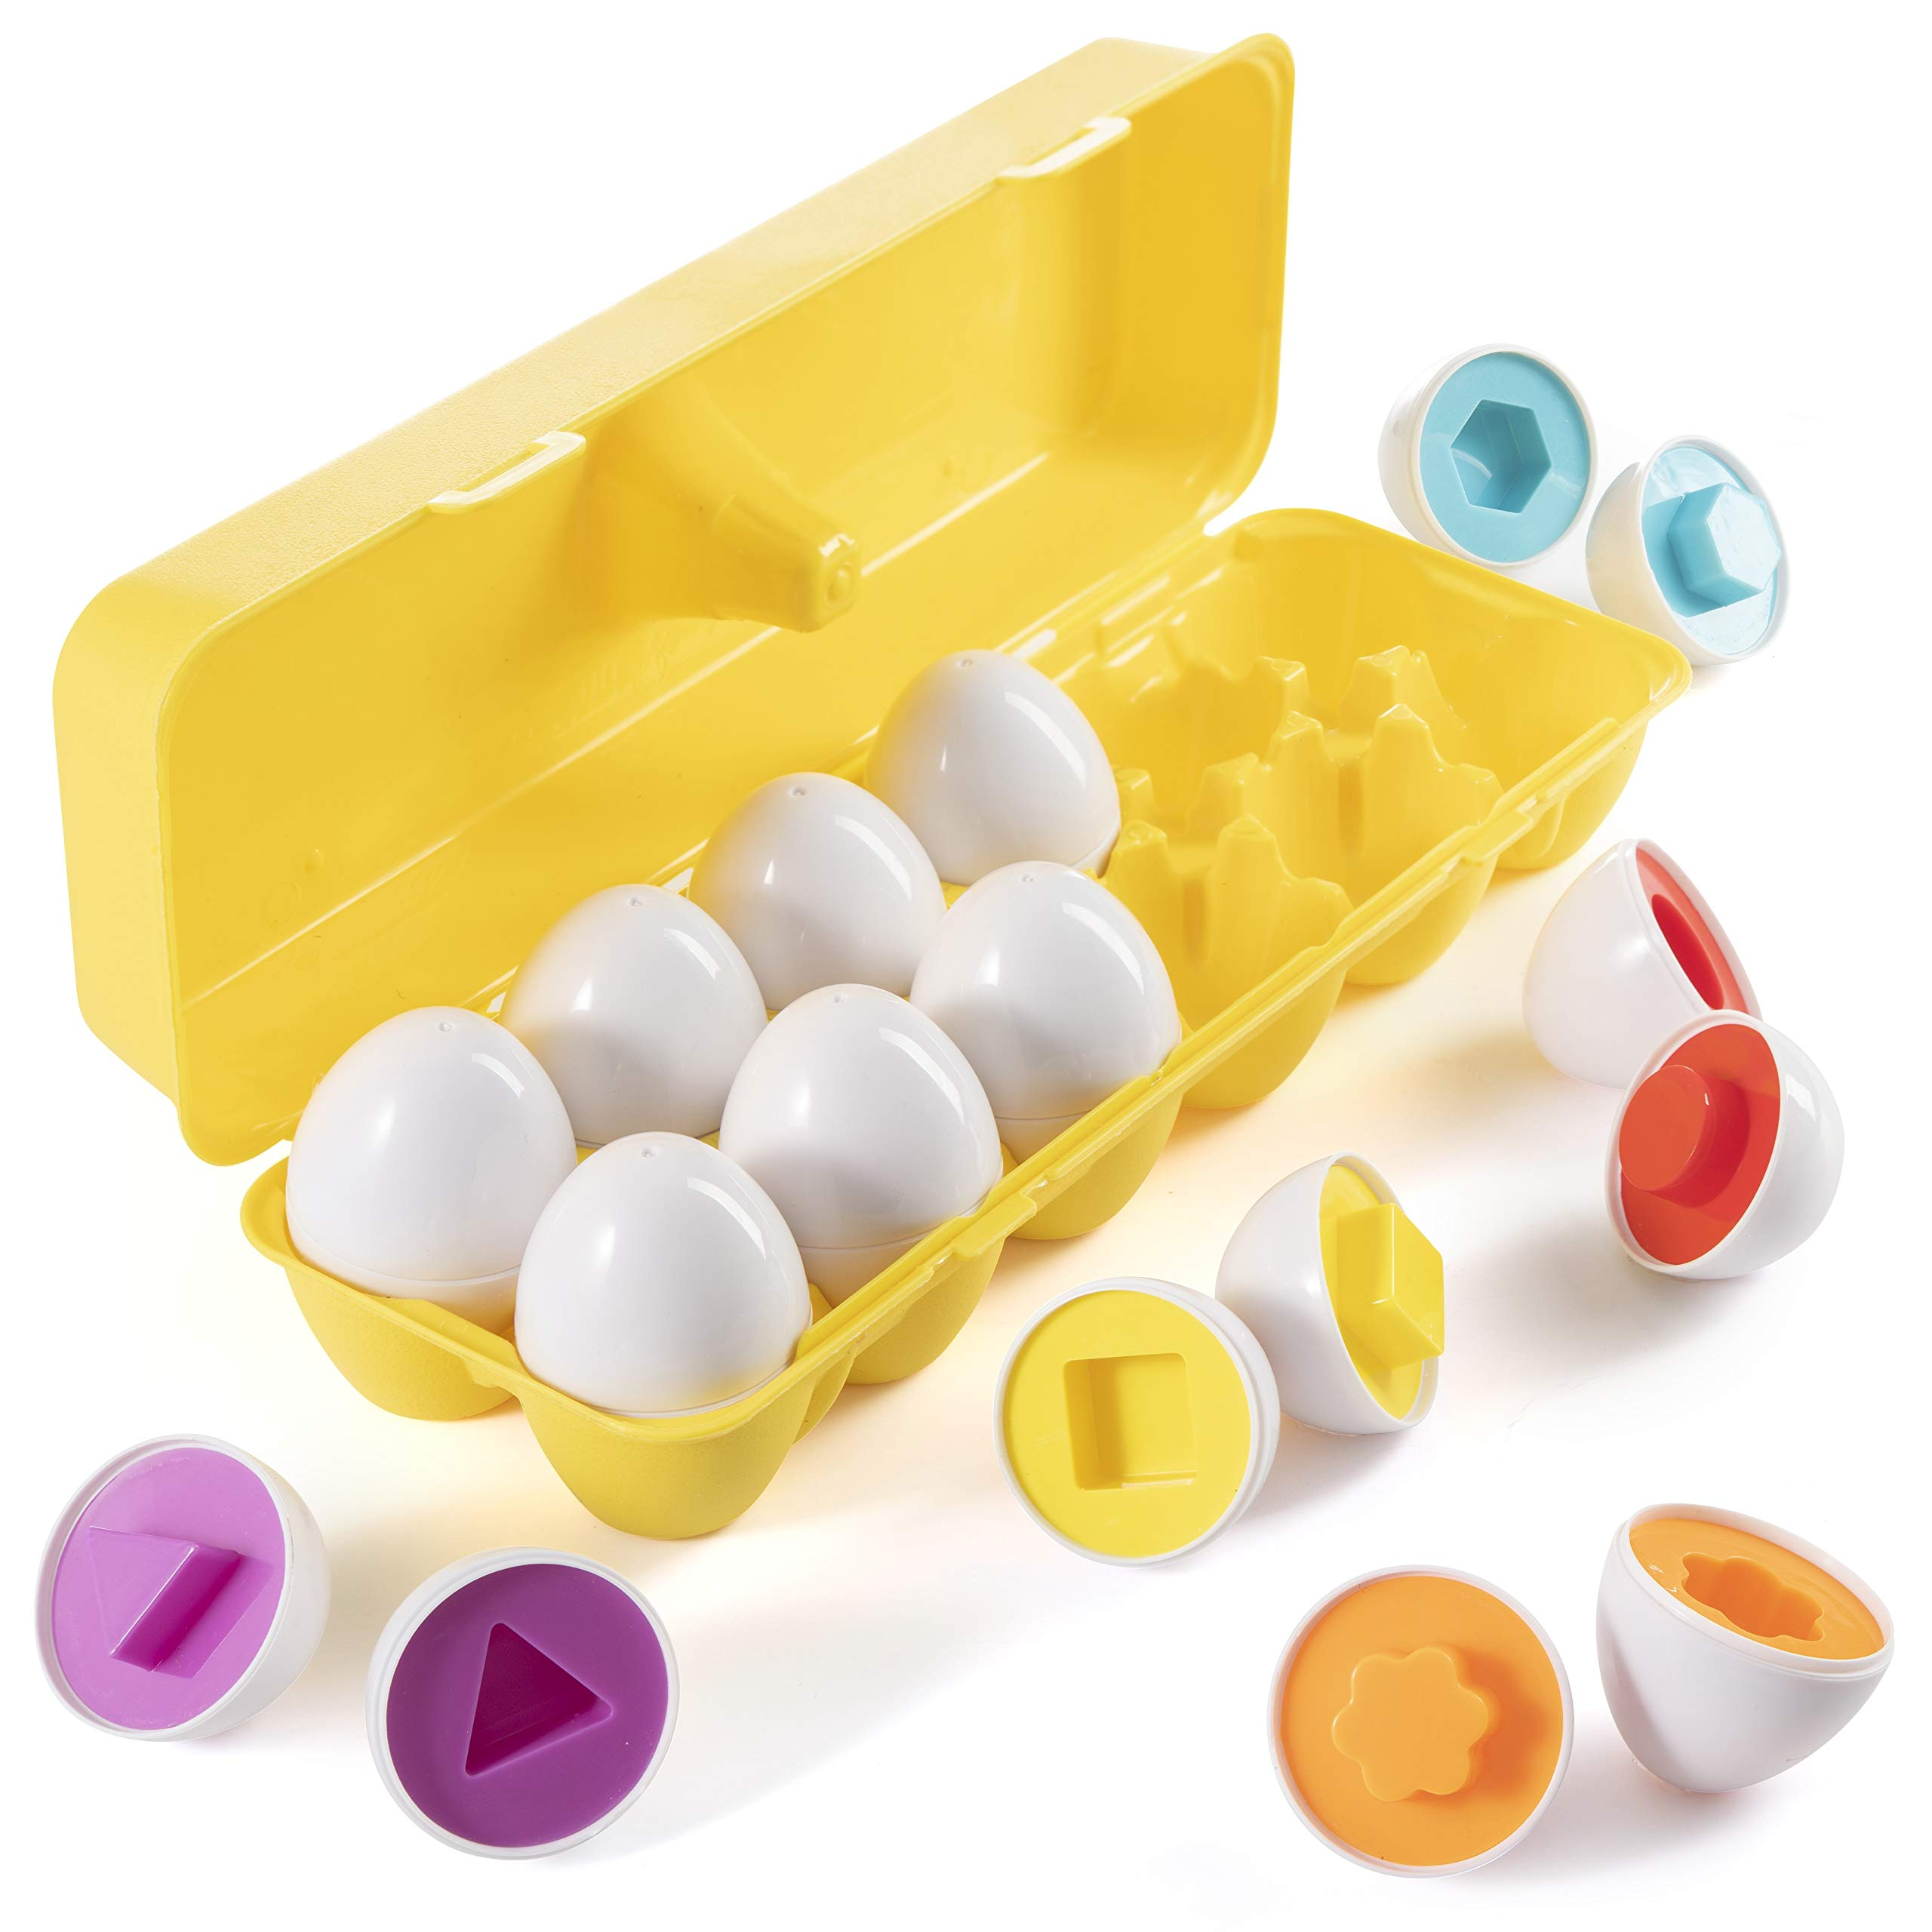 Prextex My First Find and Match Easter Matching Eggs with Yellow Eggs Holder - STEM Toys Educational Toy for Kids and Toddlers to Learn About Shapes and Colors Easter Gift